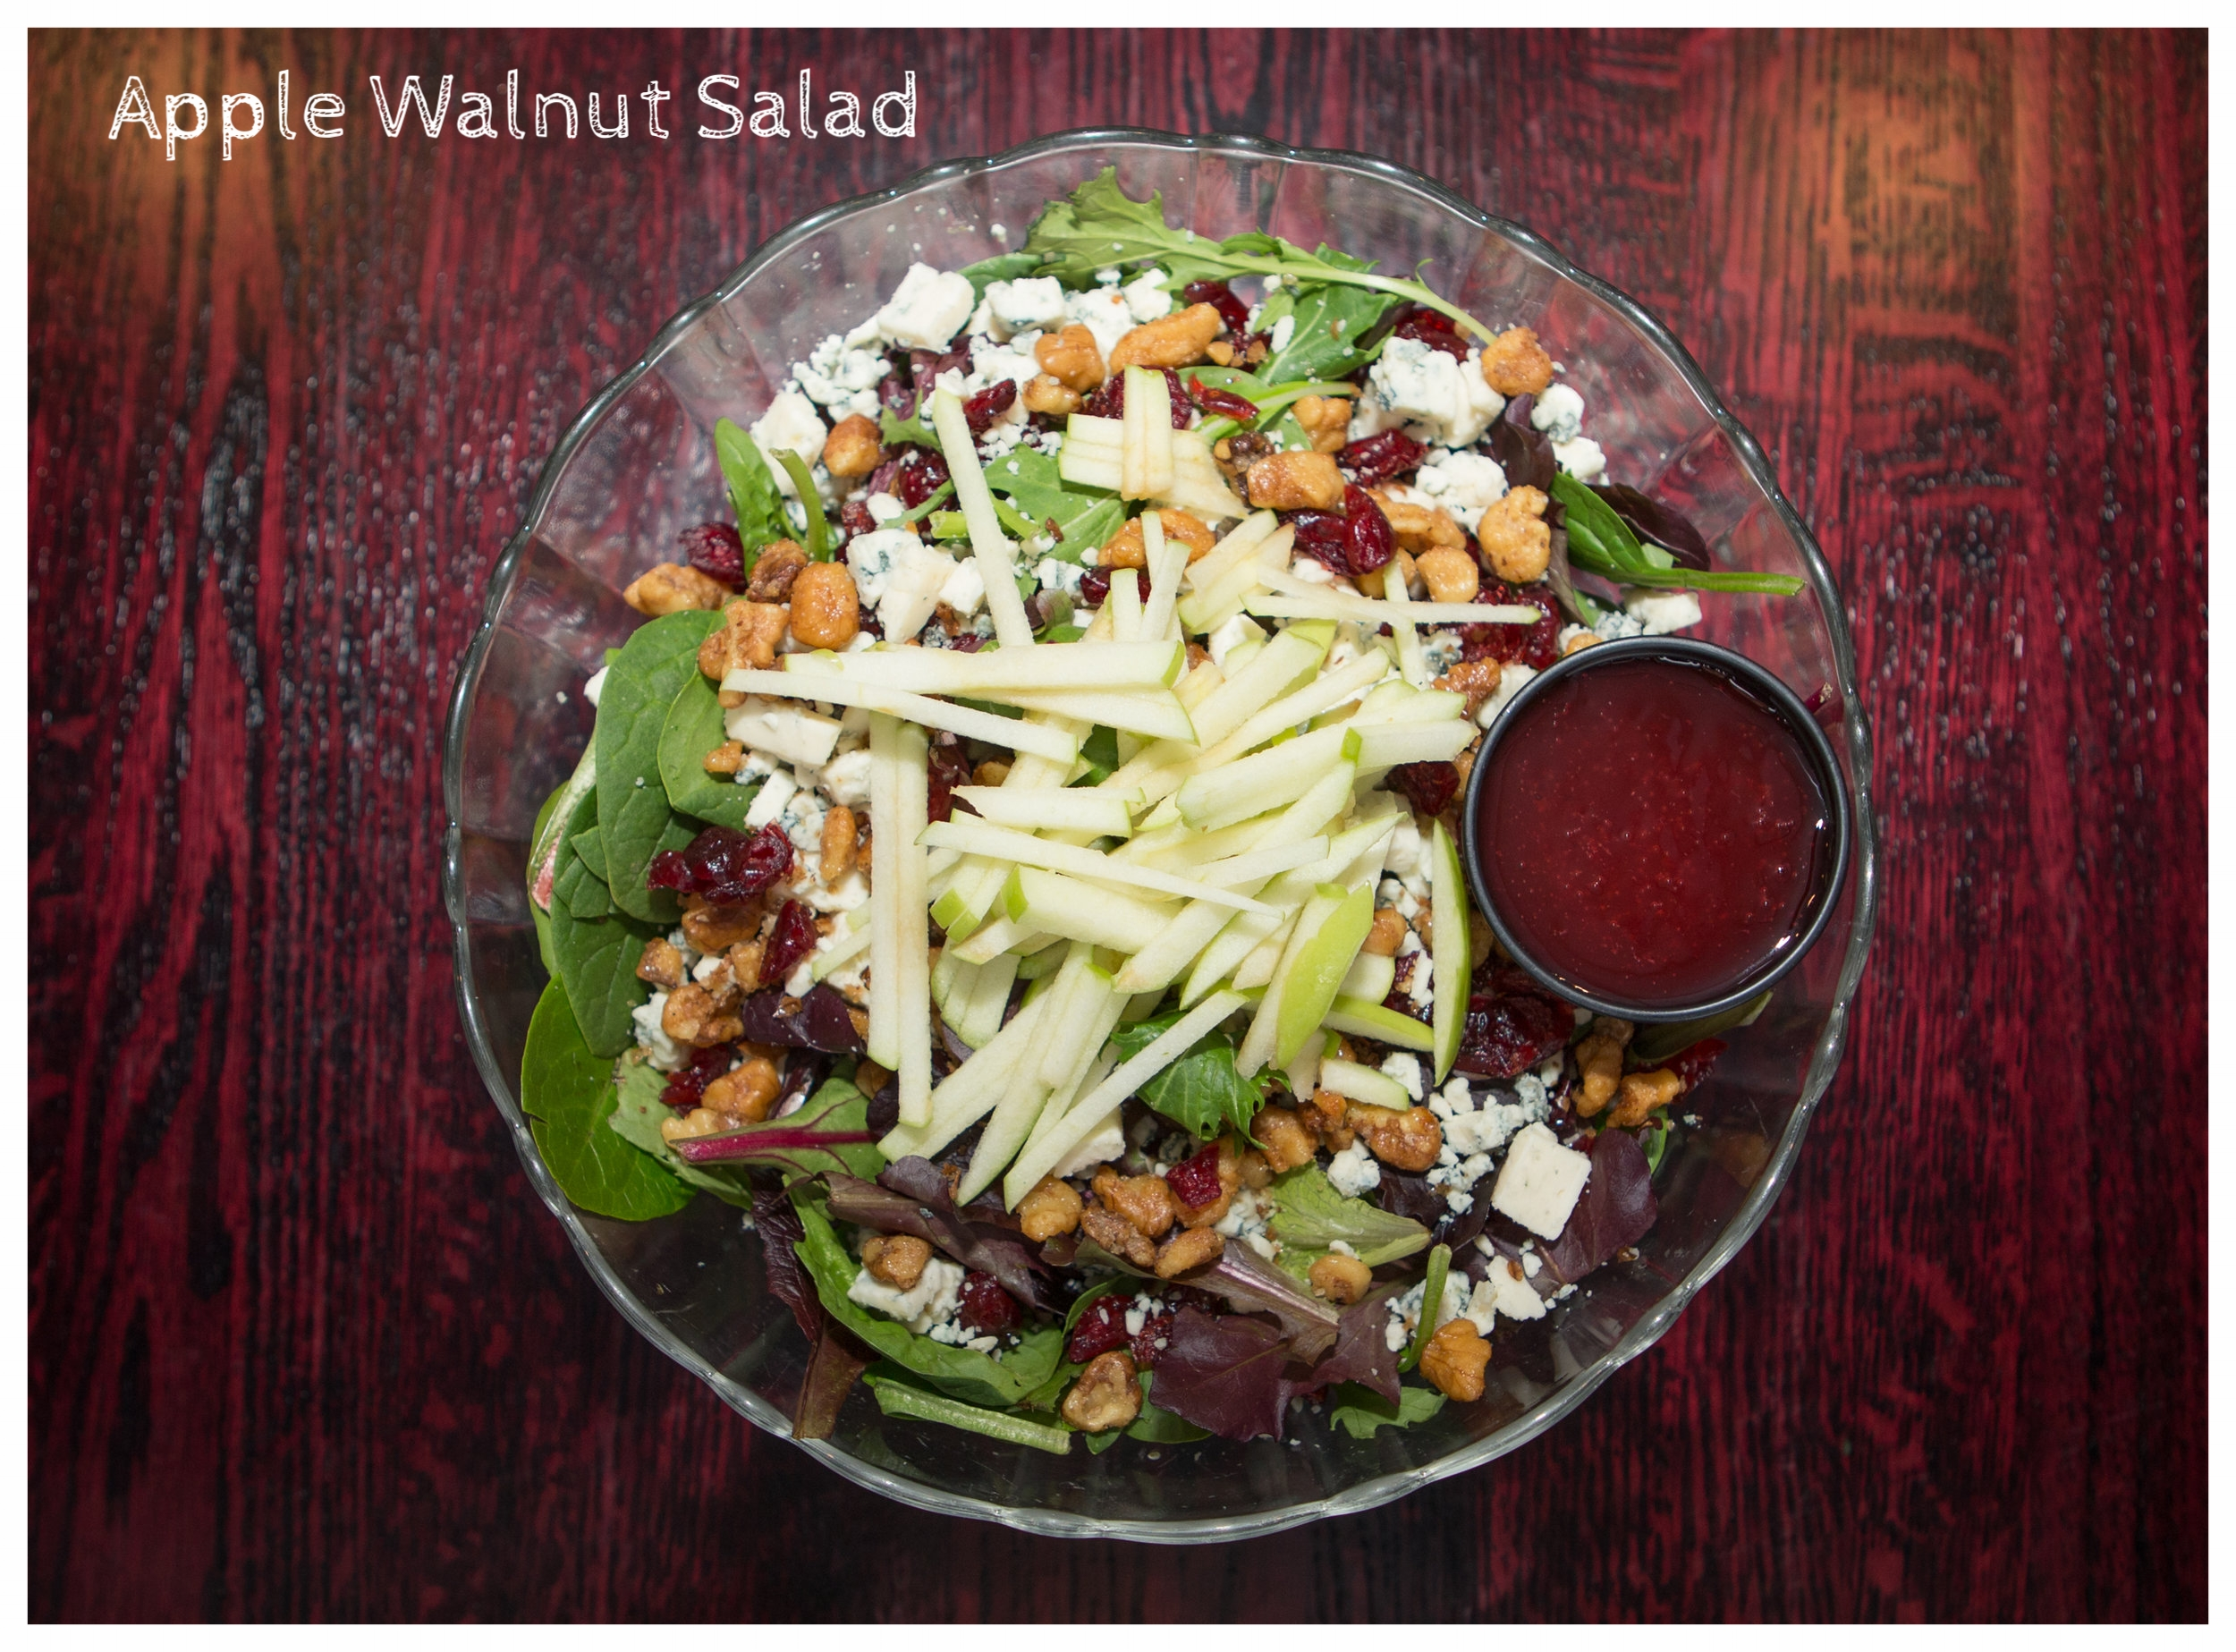 Apple Walnut Salad (top).jpg